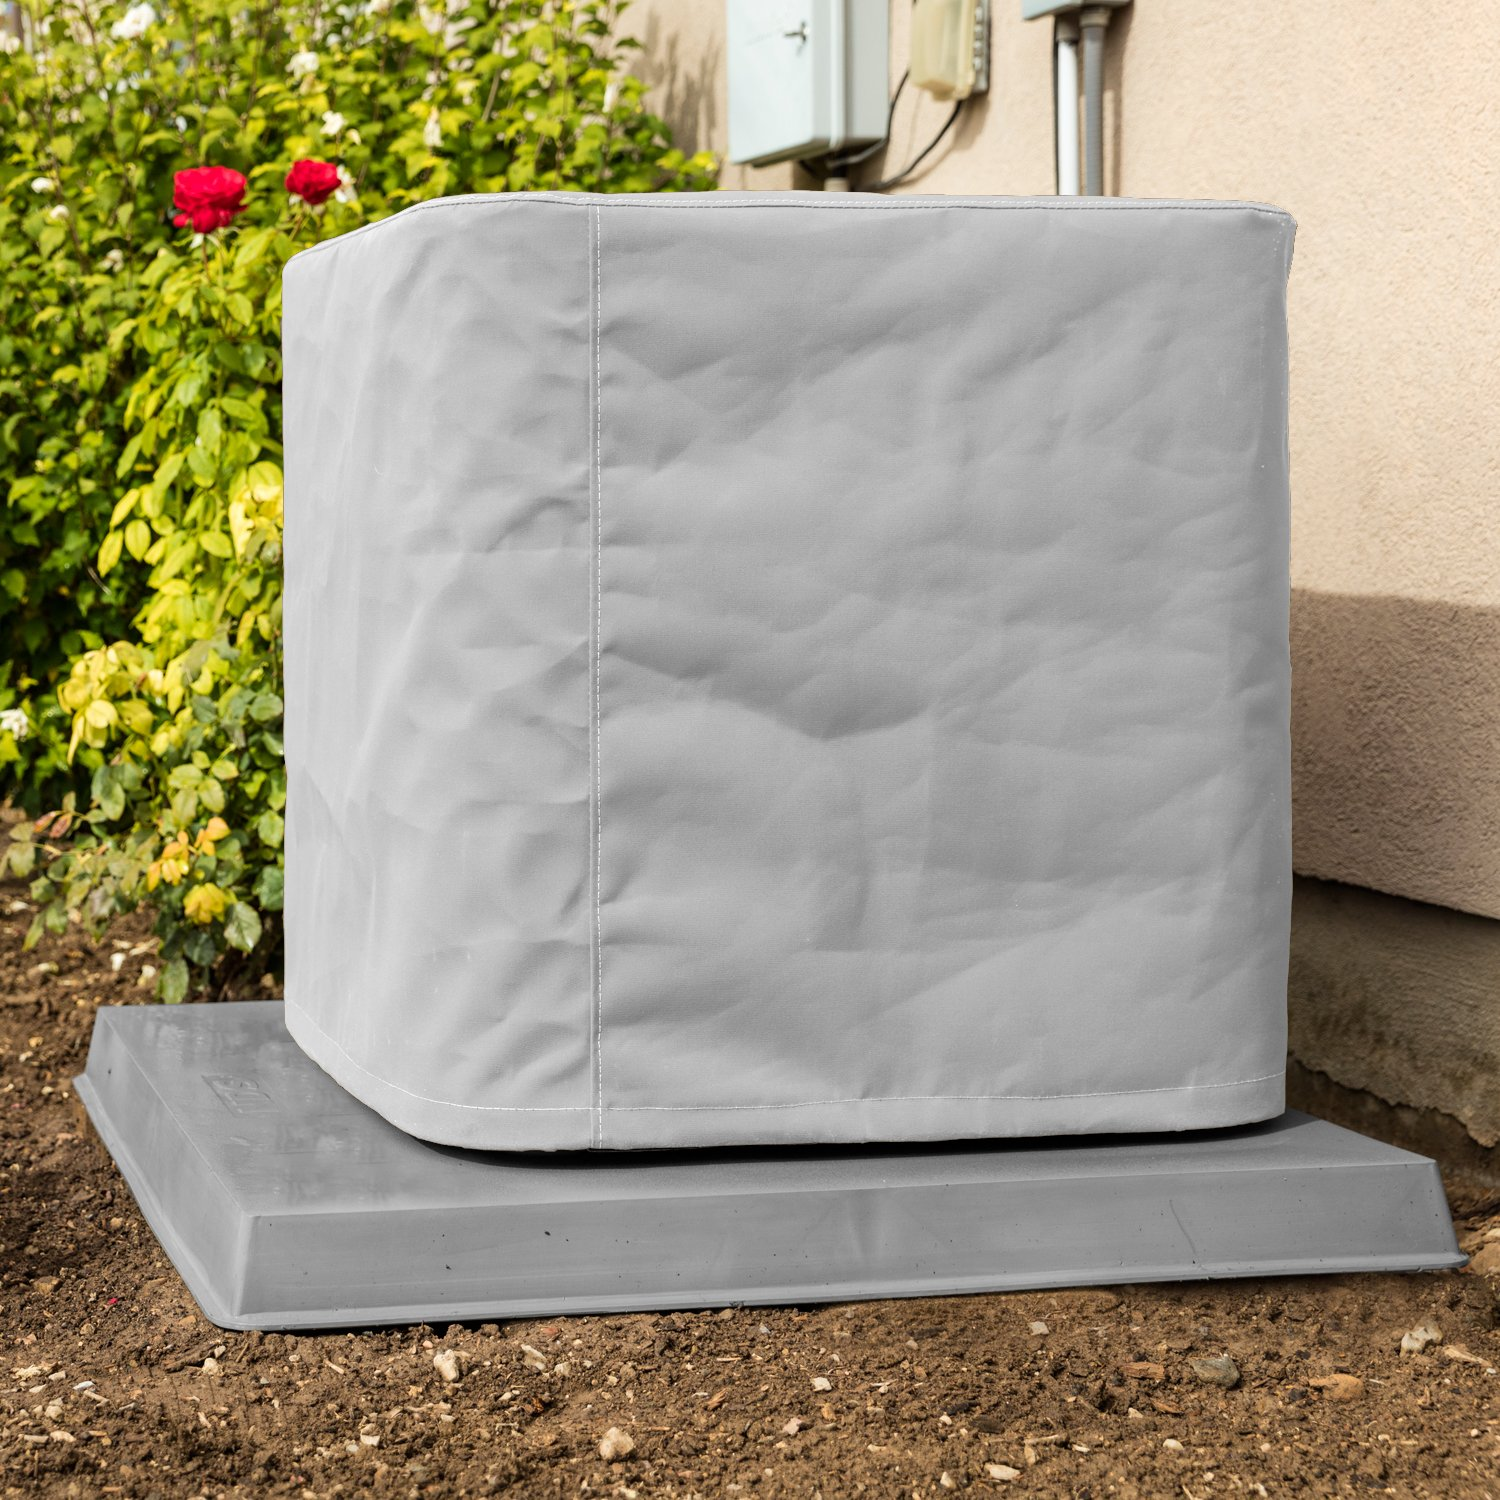 SugarHouse Custom Covers Outdoor Air Conditioner Cover 24''x24''x26'' - Premium Marine Canvas - Gray - Made in the USA - 5-year Warranty